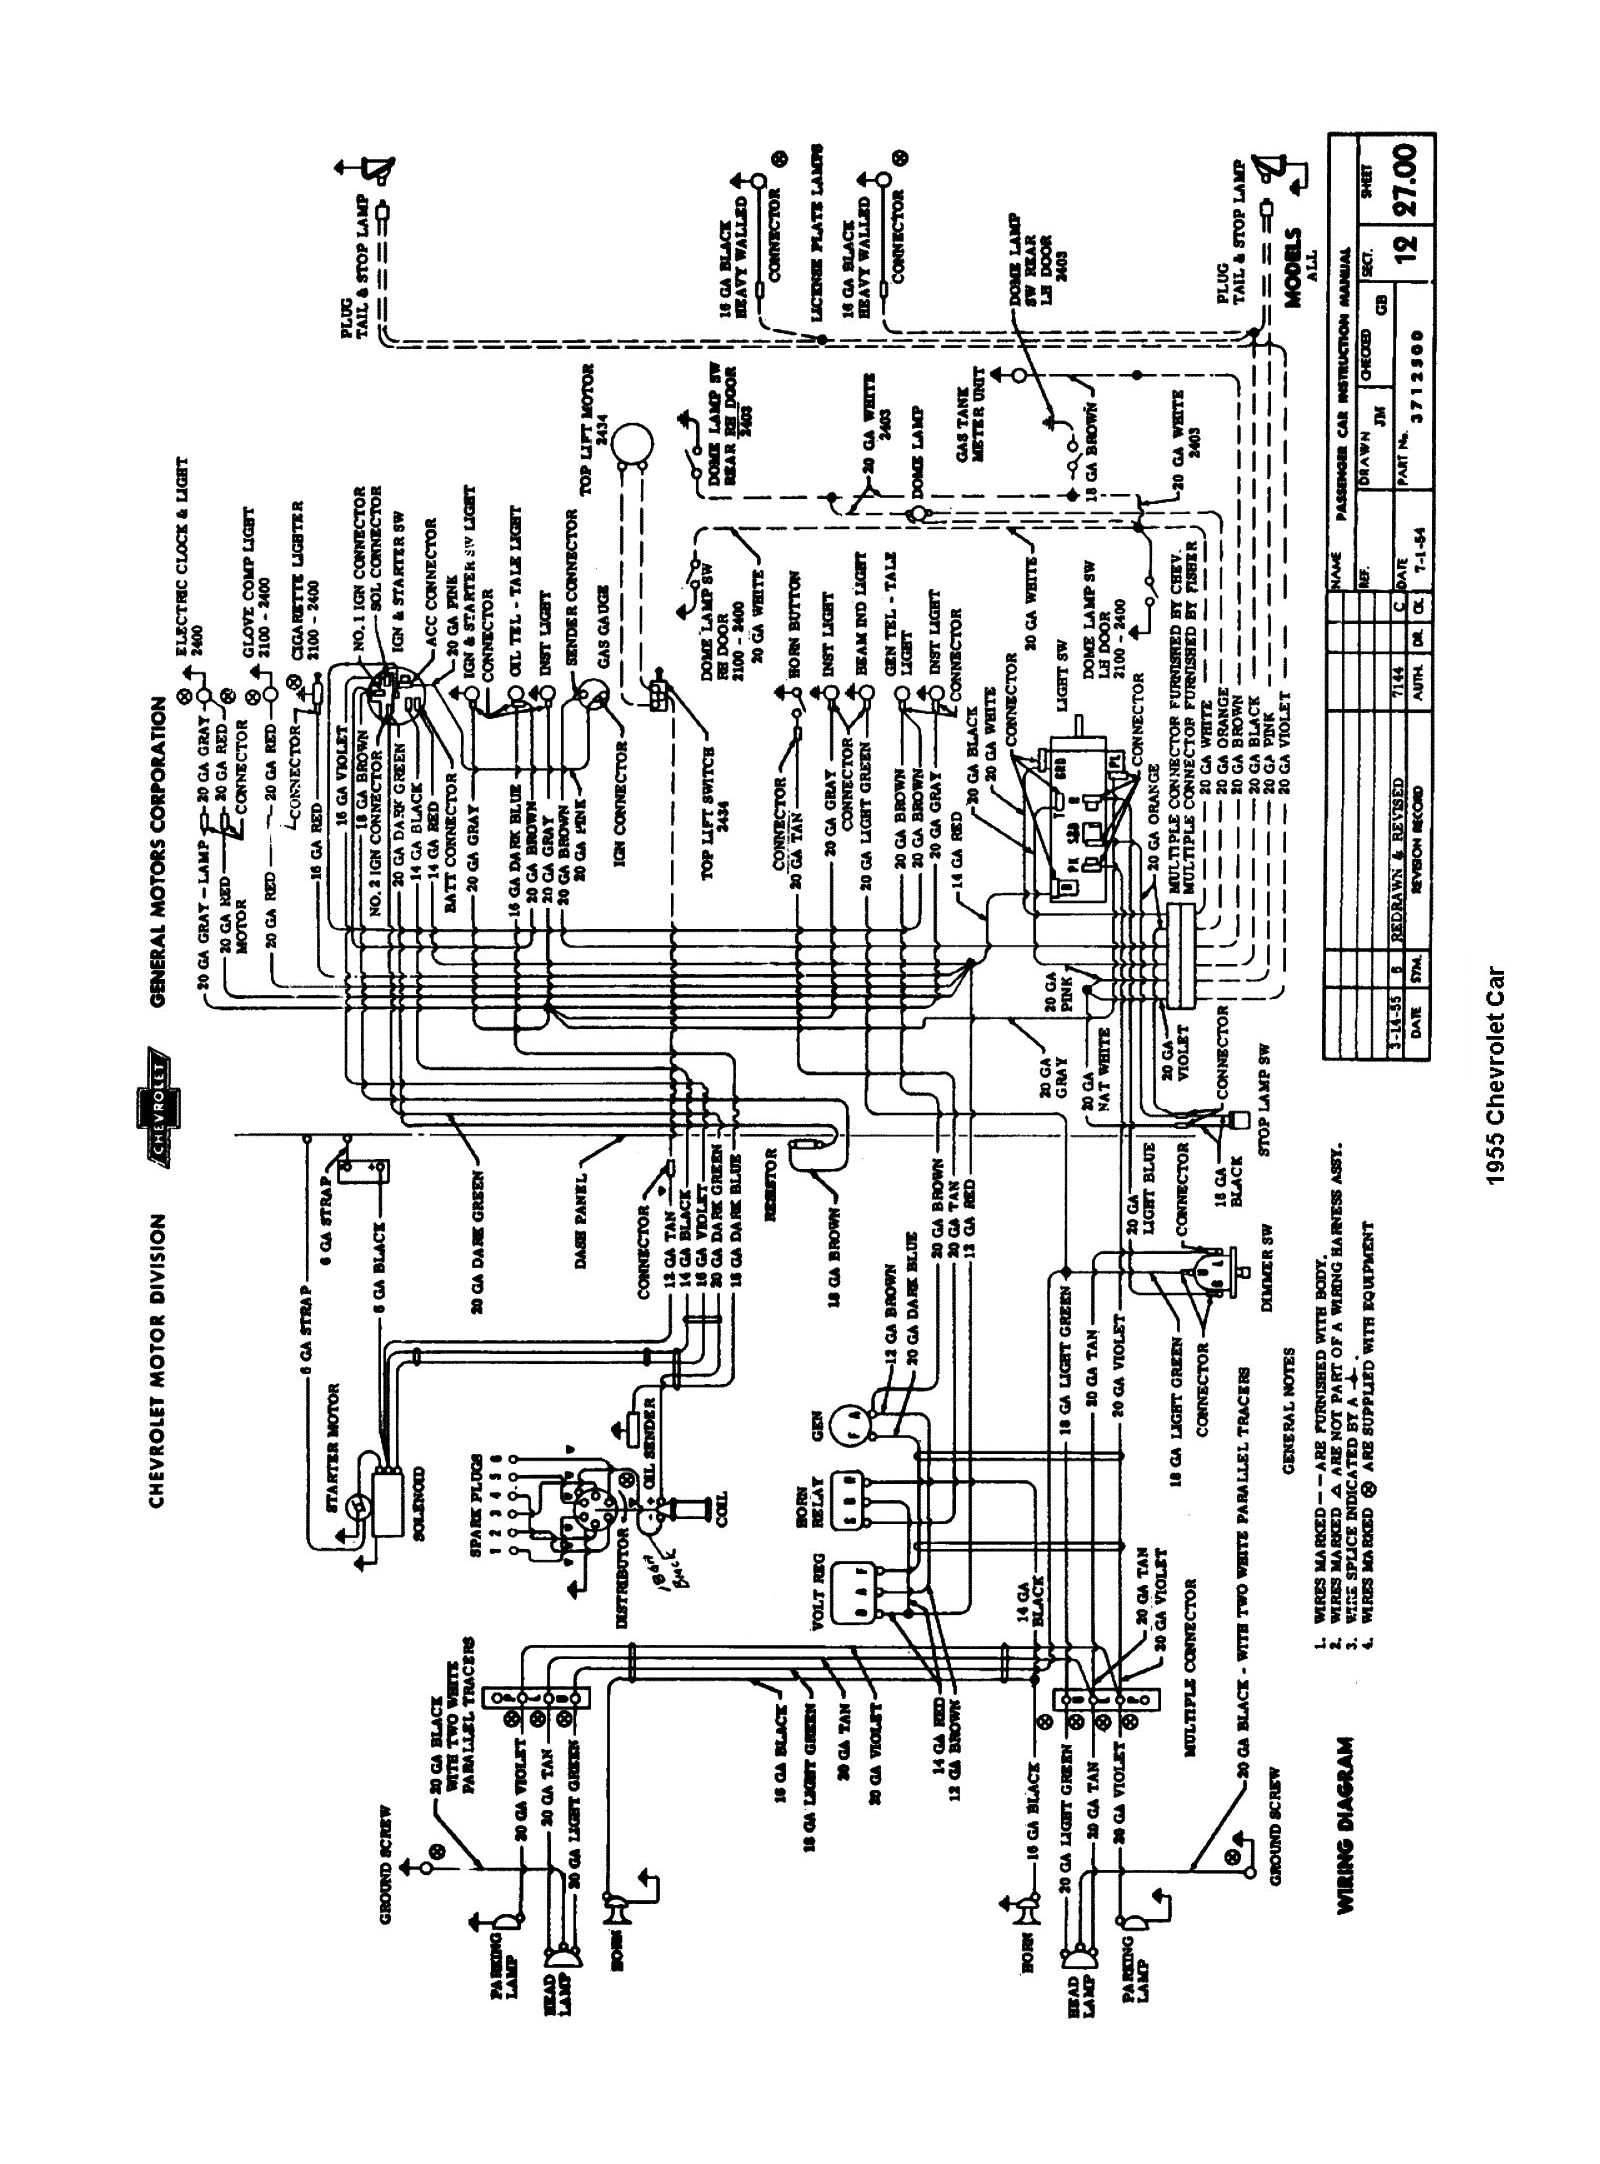 56 chevy ignition wiring diagram schematic